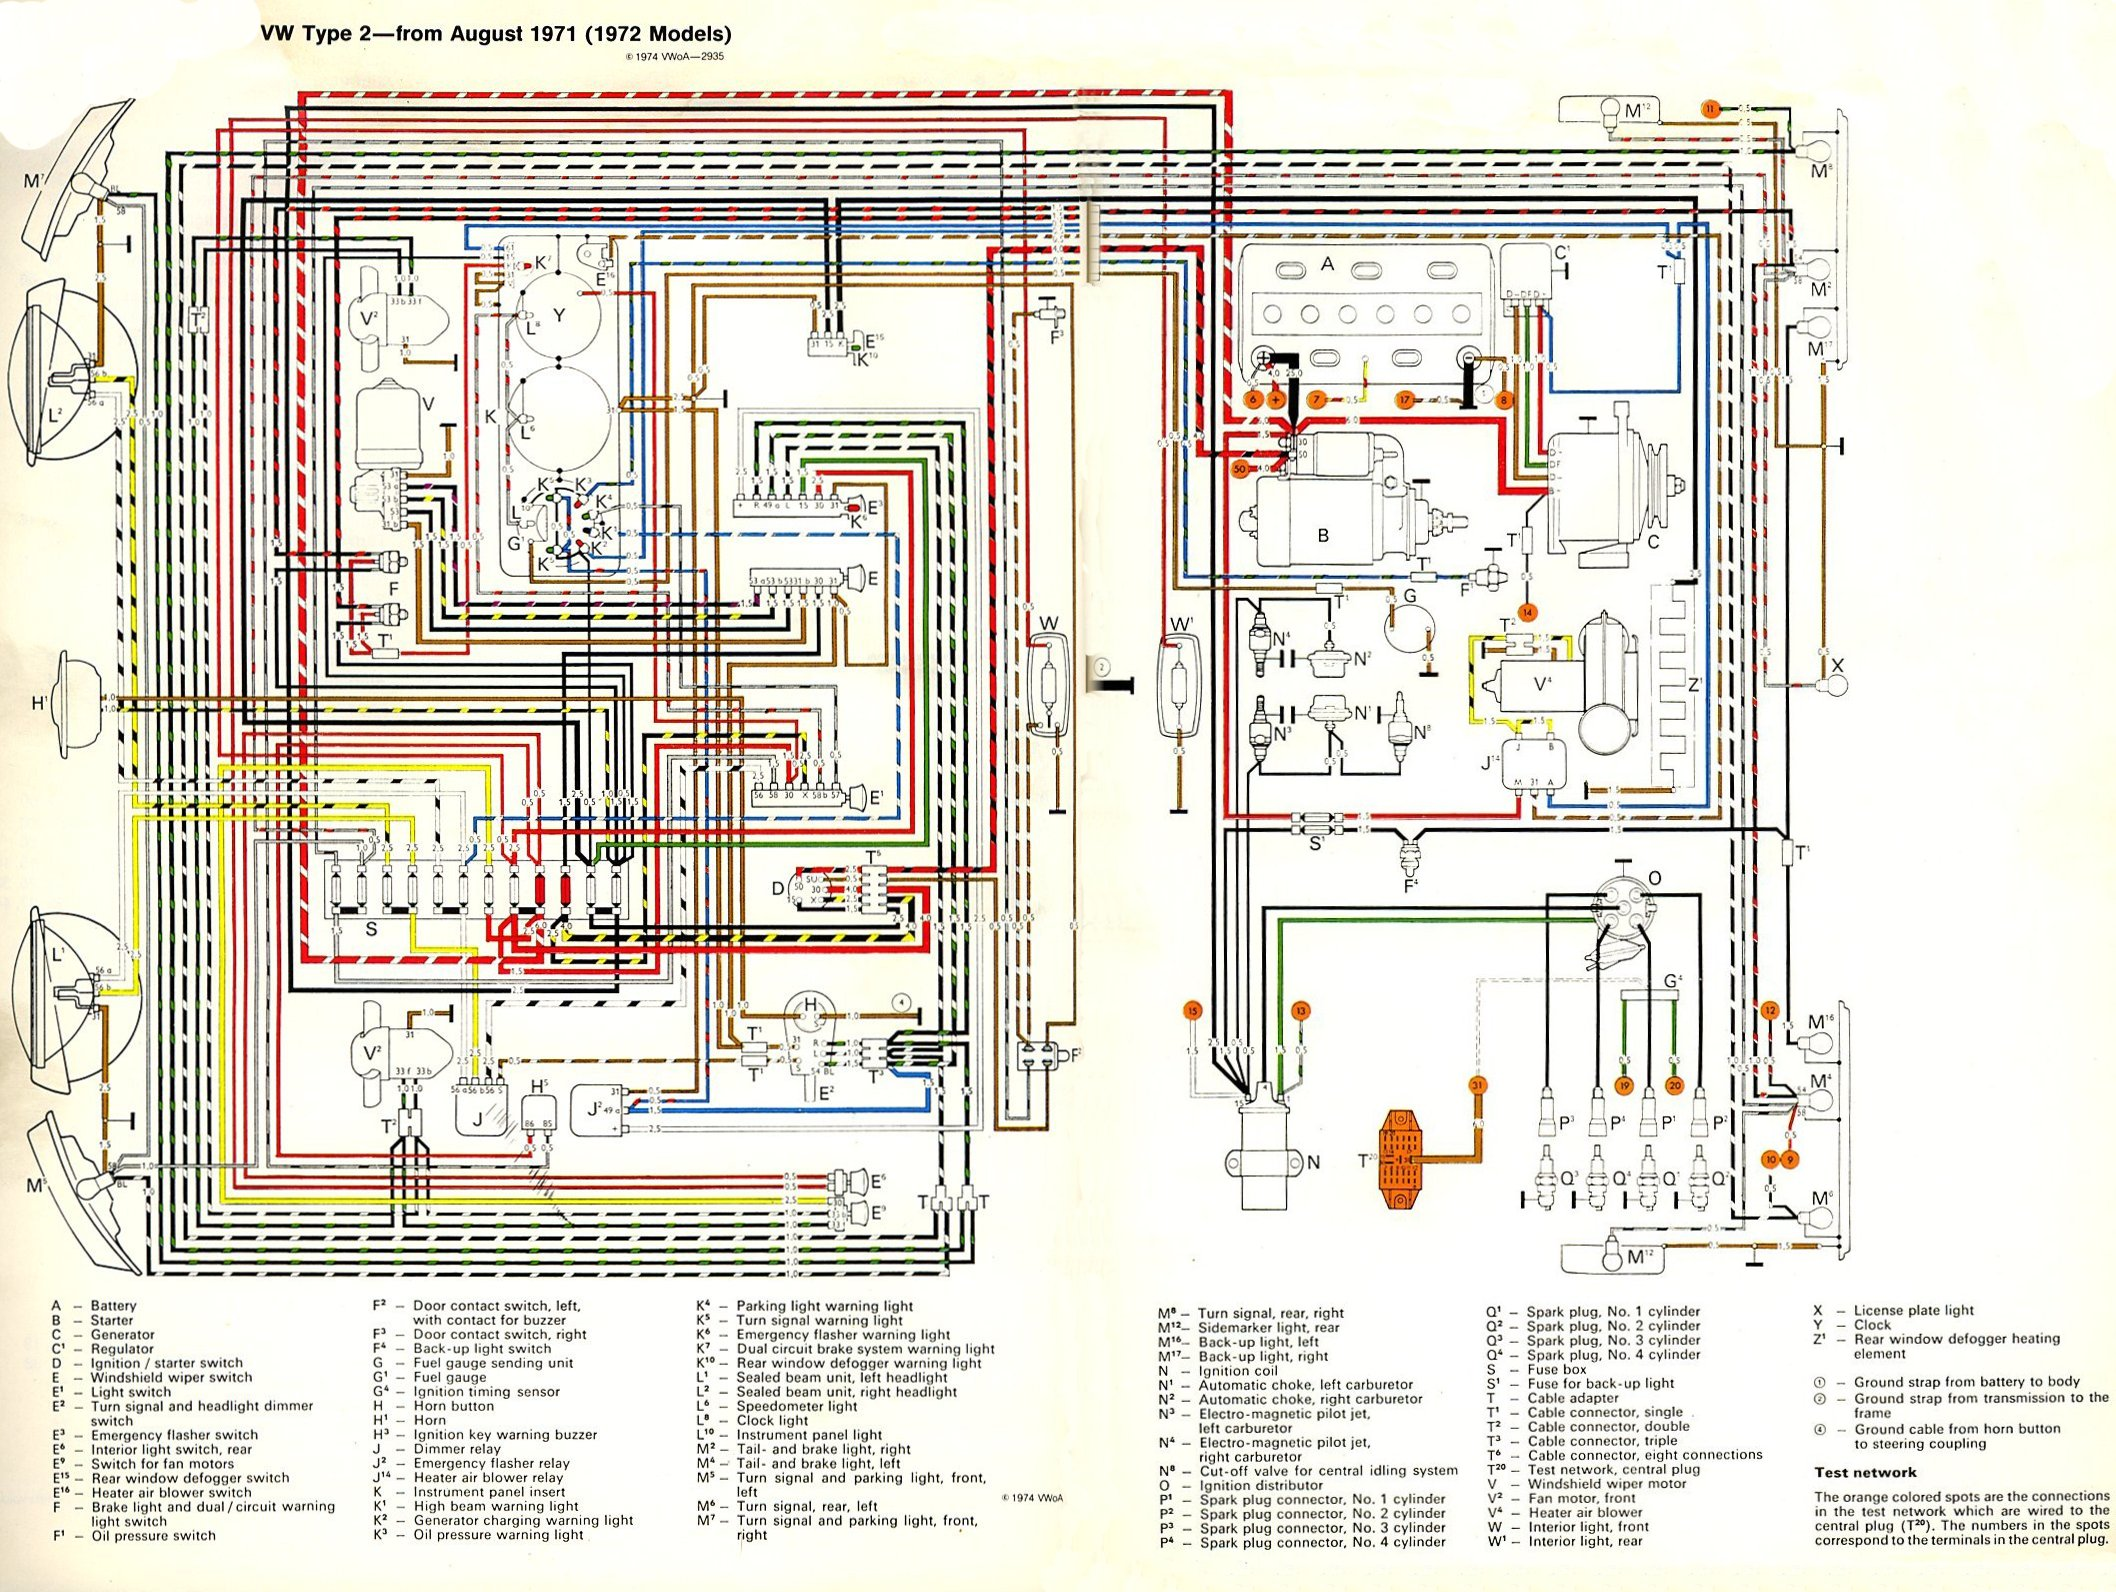 bus_1972_wiring 1977 porsche 911 wiring diagram wiring diagram simonand 1978 vw bus fuse box diagram at mifinder.co